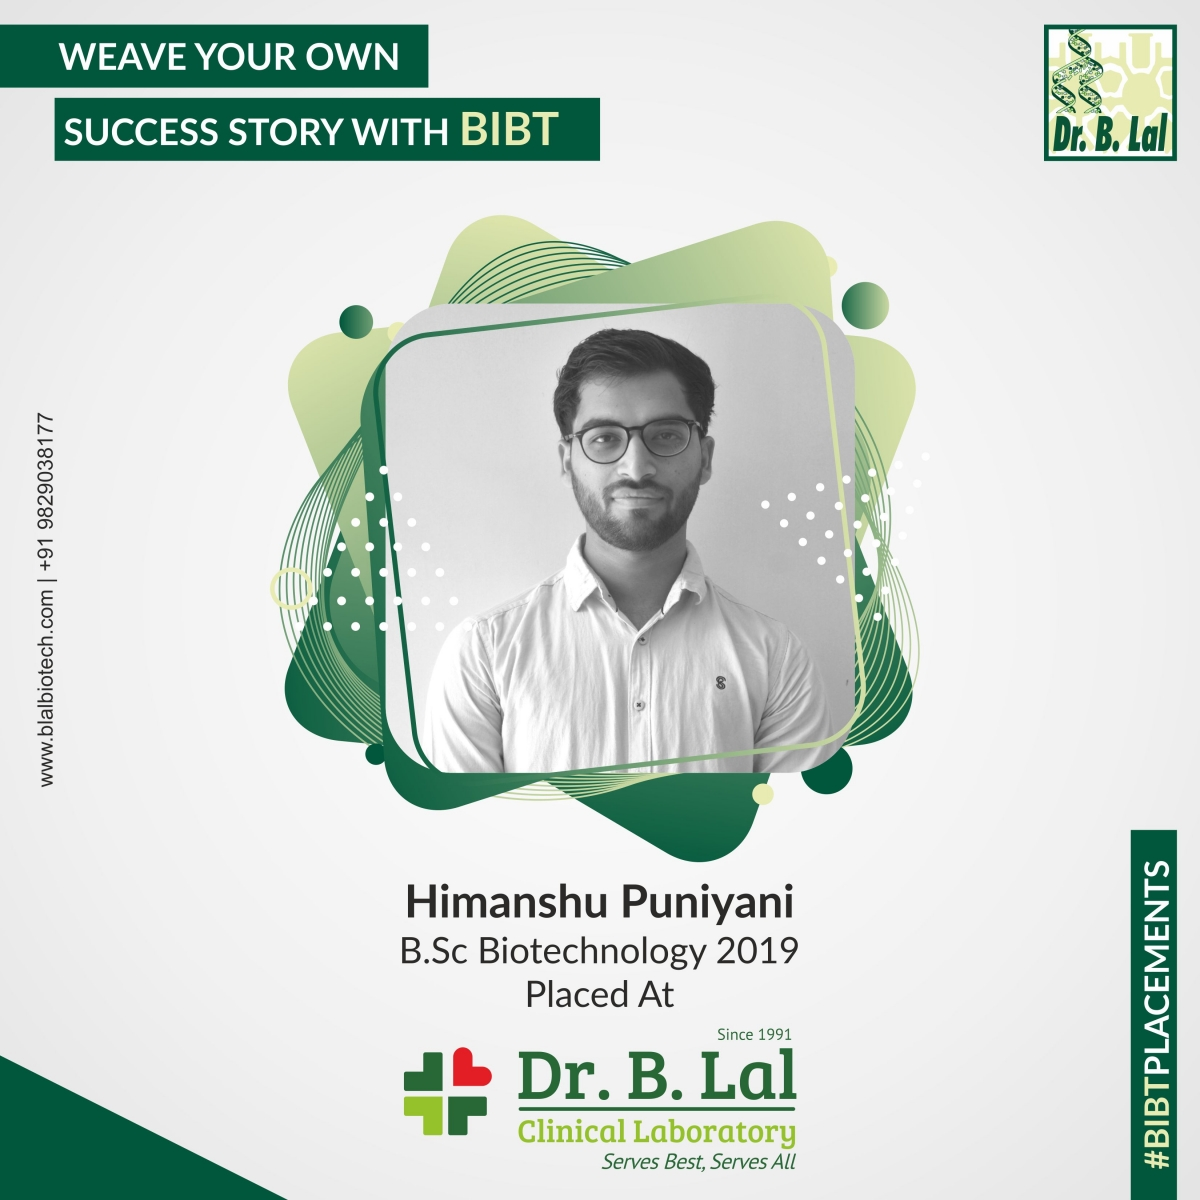 Himanshu Puniyani, B.Sc. Biotechnology 2019 | #BIBTPlacements